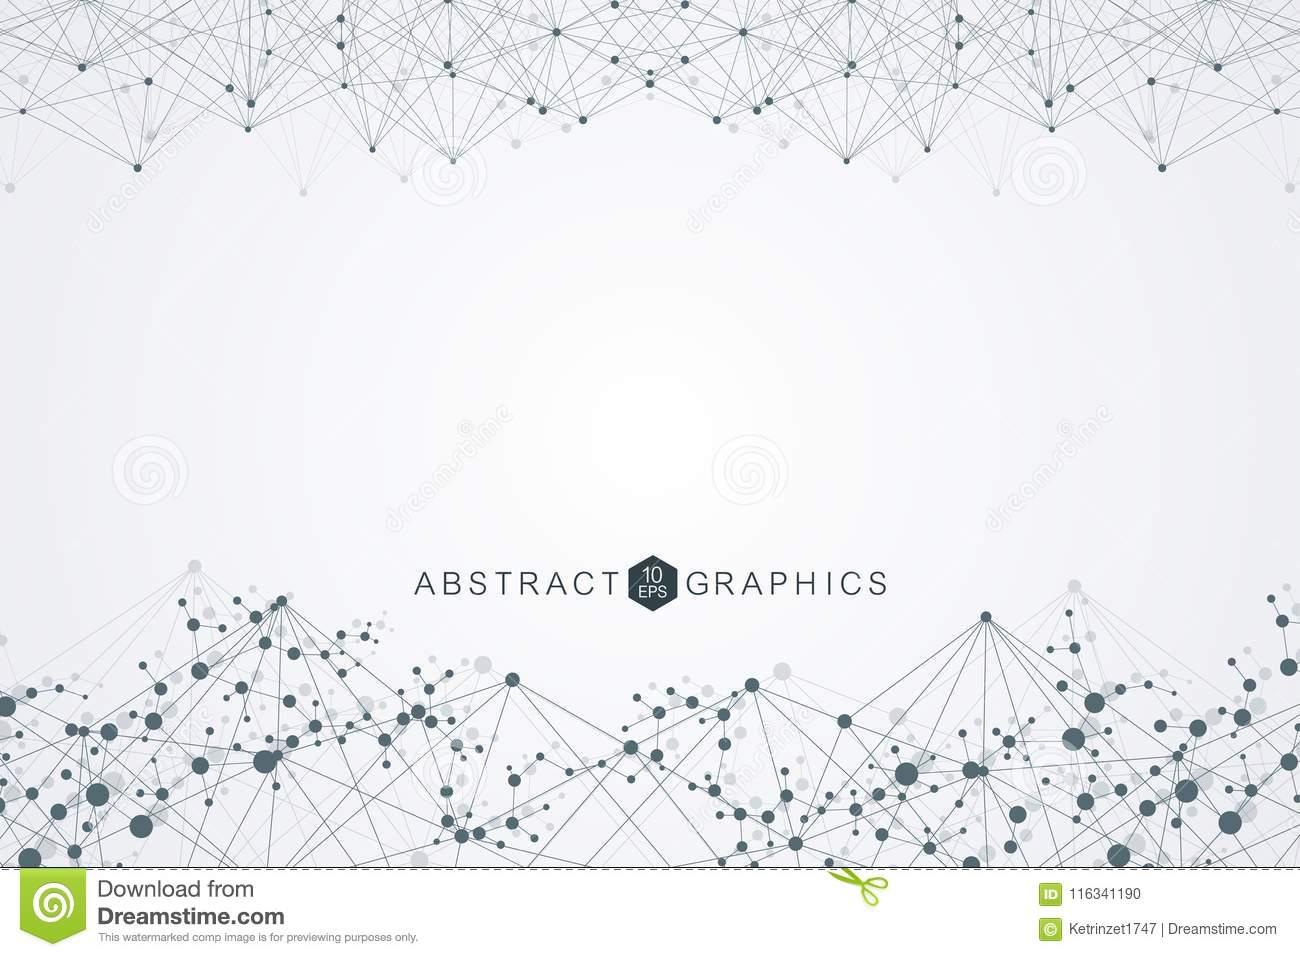 Structure molecule and communication. Dna, atom, neurons. Scientific concept for your design. Connected lines with dots